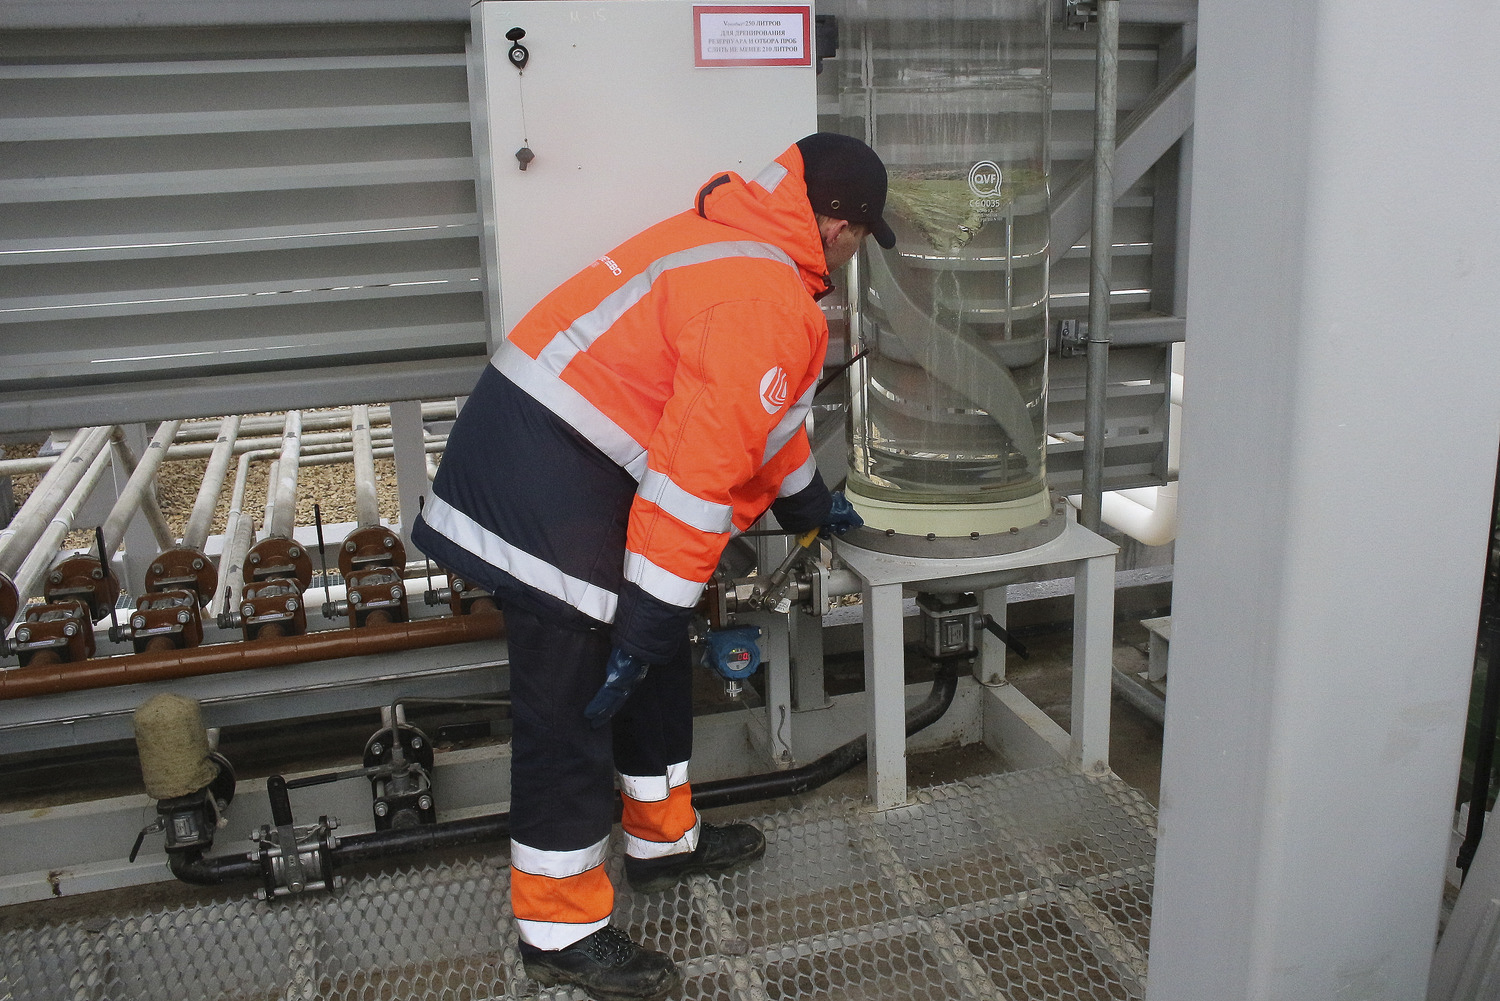 New Refuelling Complex At The Sheremetyevo Airport Russian Peco Fuel Filters In Receiving Tanks Process Of Settling Takes Place After Which Samples Are Taken For Quality Assessment According To Results